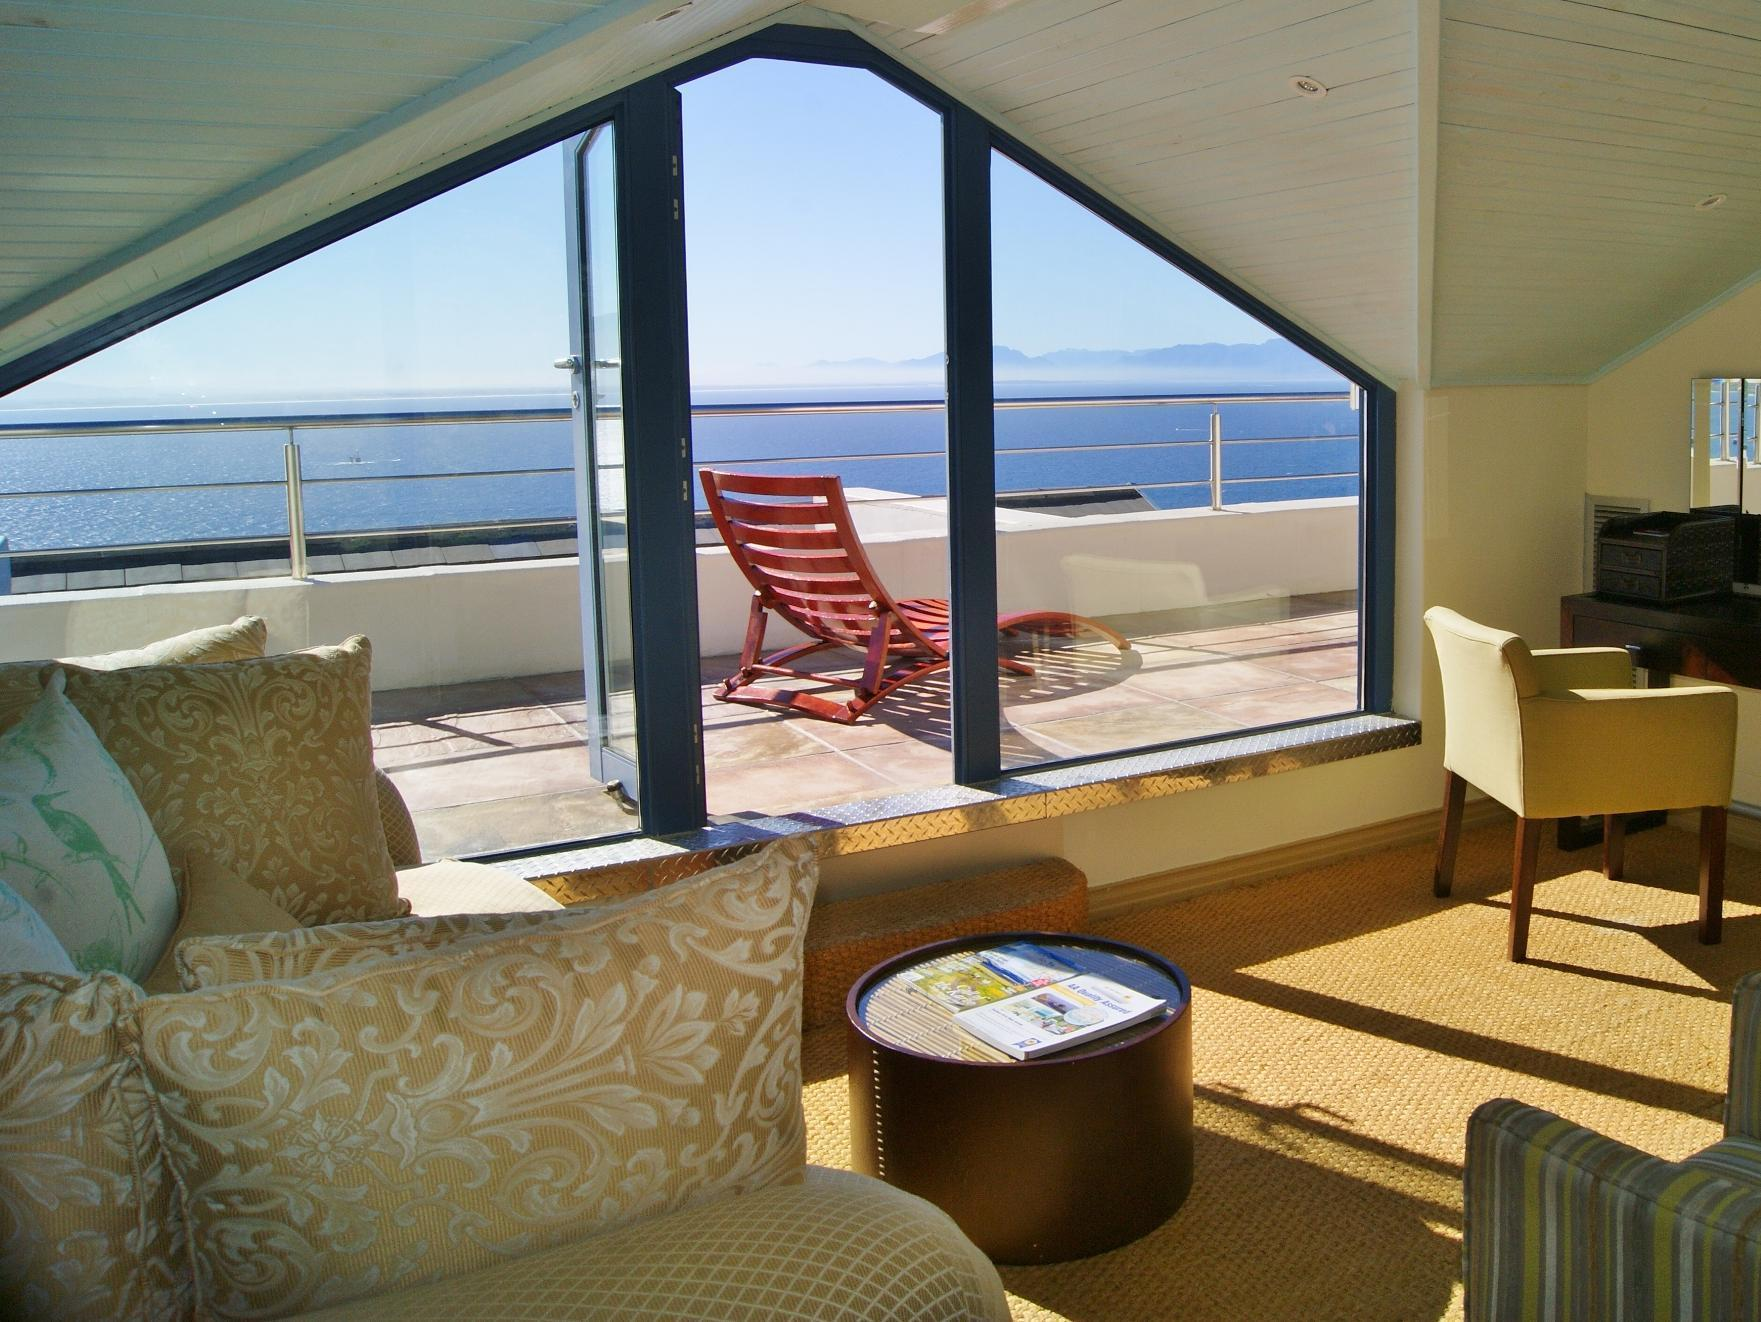 Sea View Deluxe with balcony